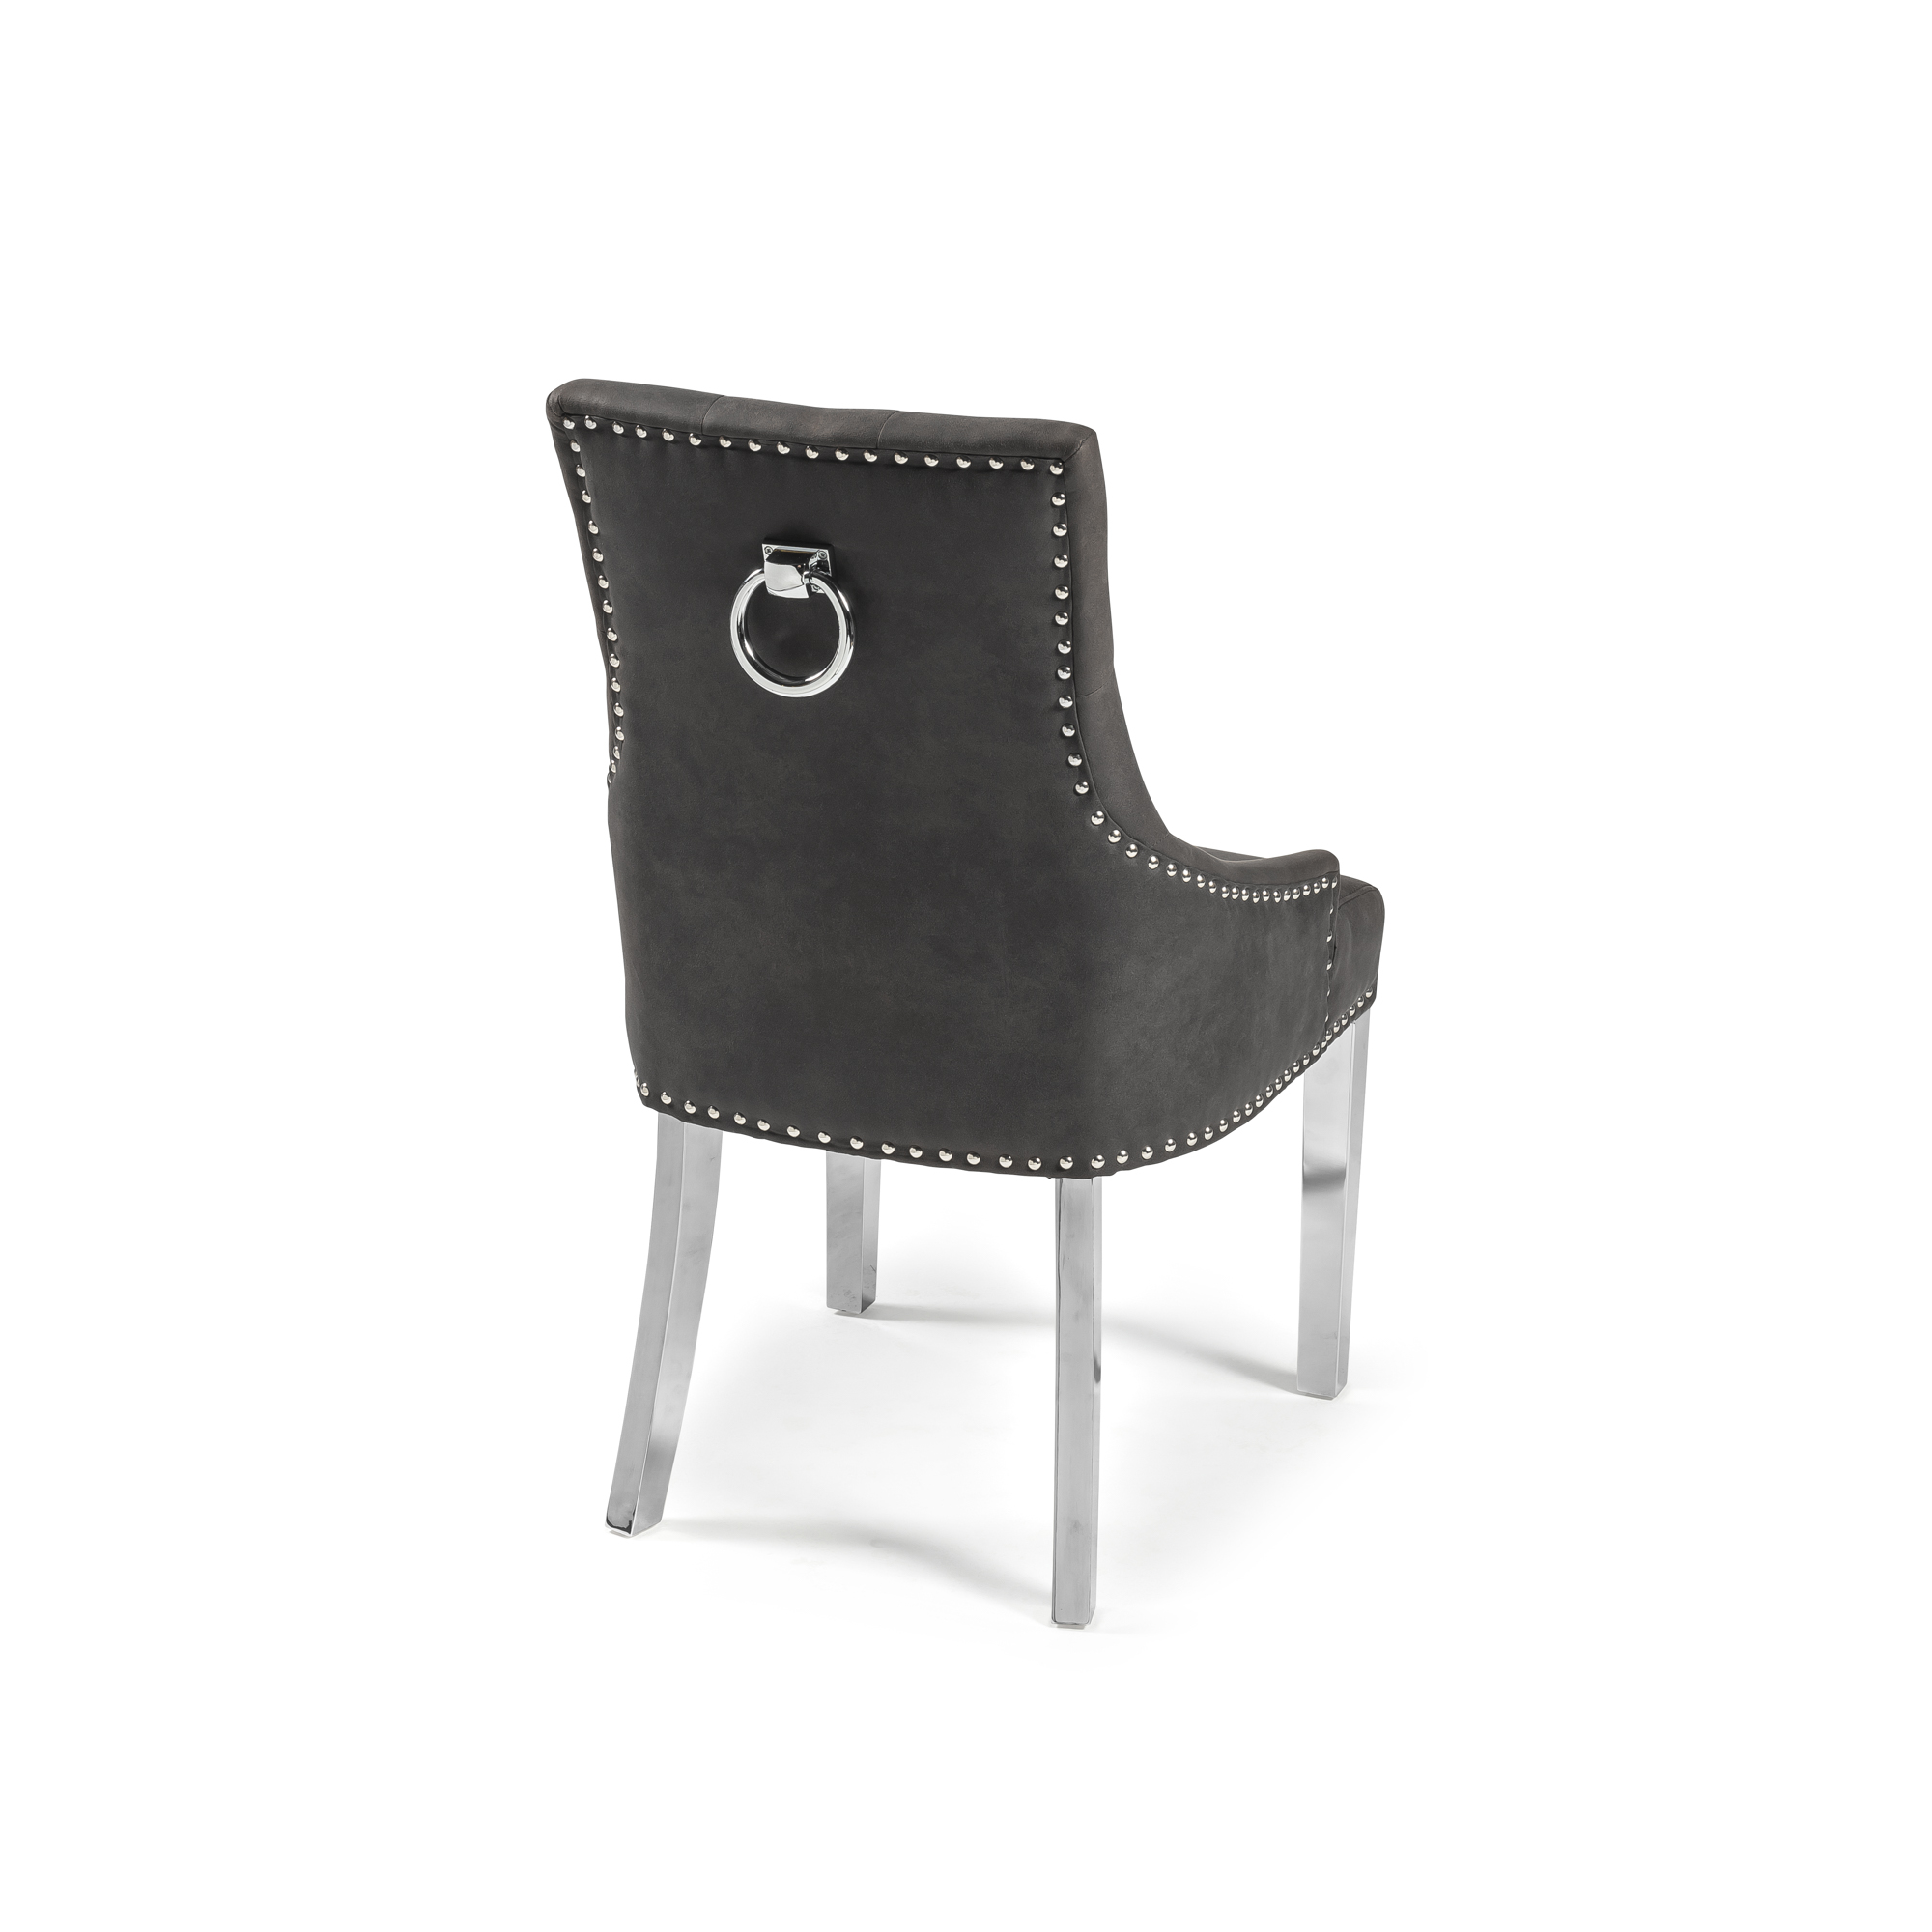 Shadow Grey Buck Upholstered Scoop Dining Chair with a Hoop